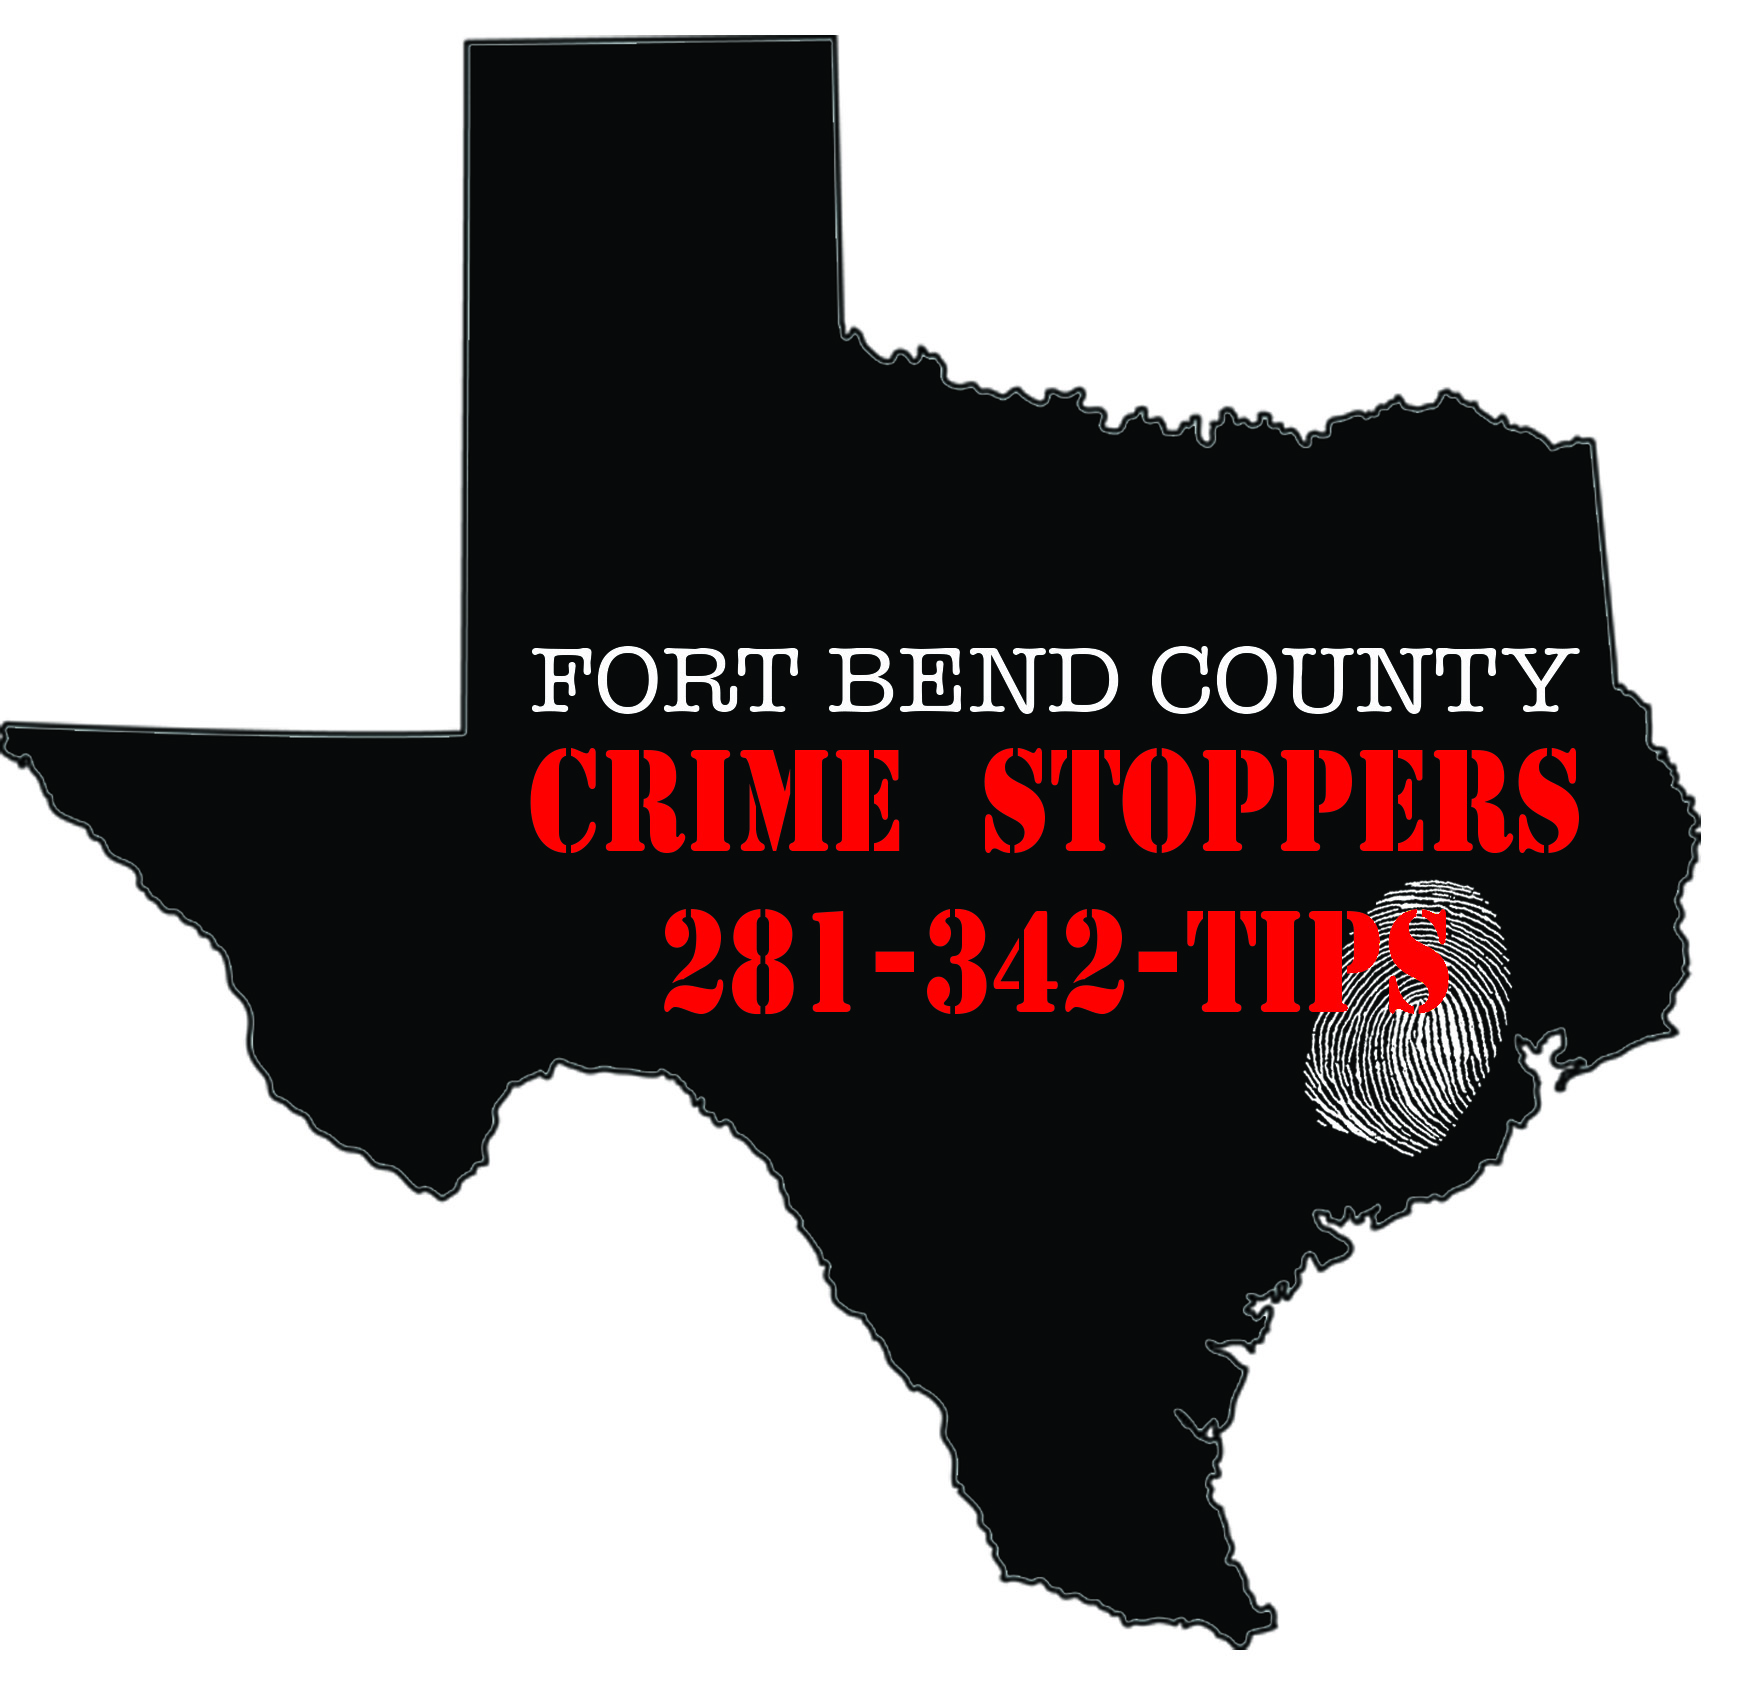 Fort Bend County Crime Stoppers